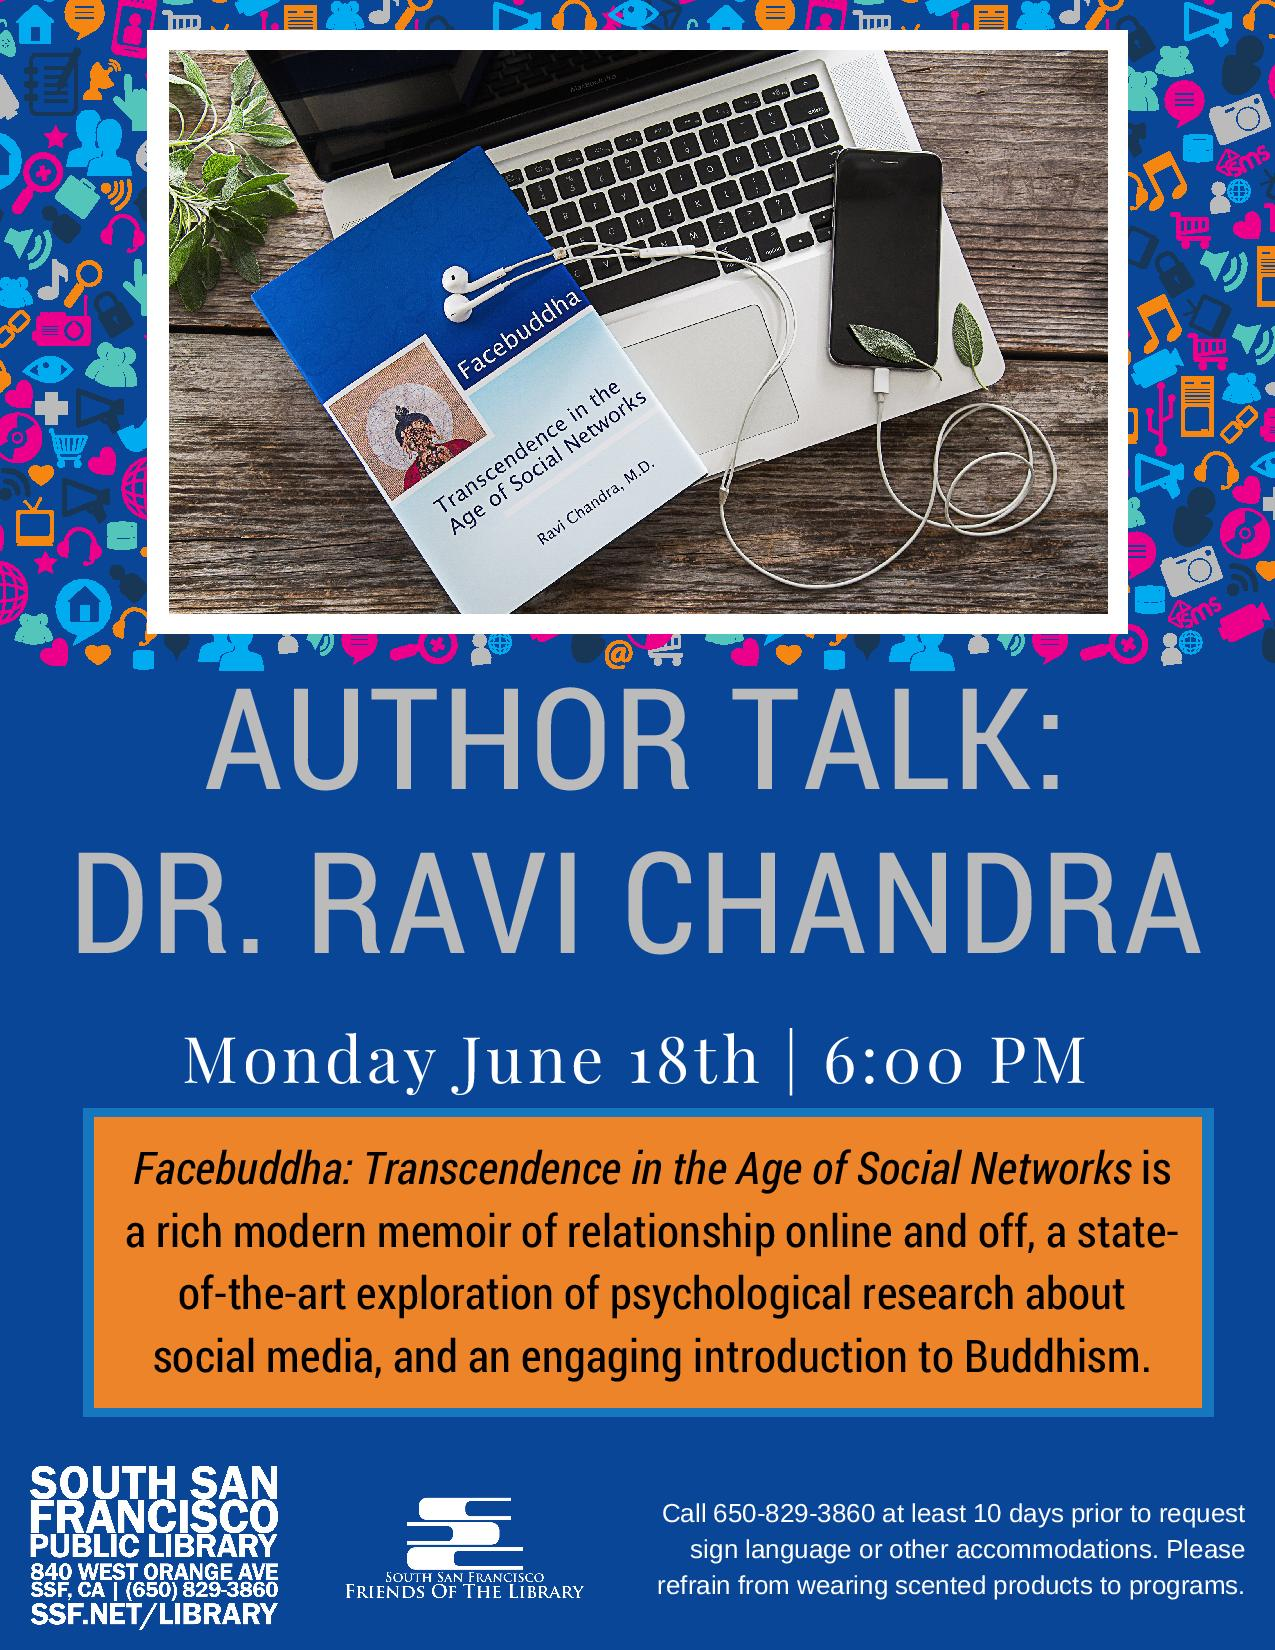 South San Francisco Library Event June 18th – Facebuddha Author Talk With Dr. Ravi Chandra